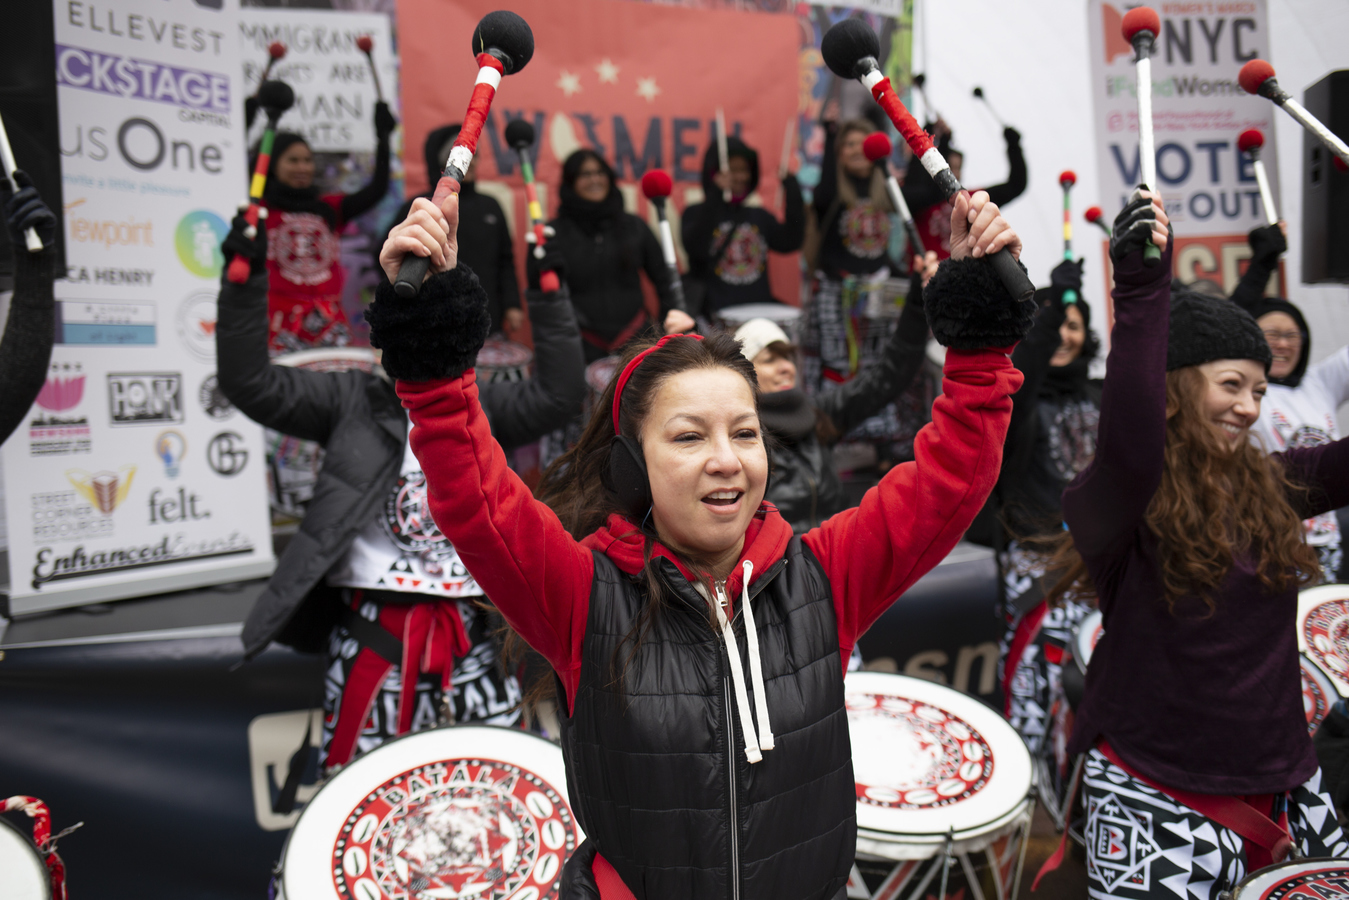 Womens March Foley Square 1/18/20 Batala NYC performs